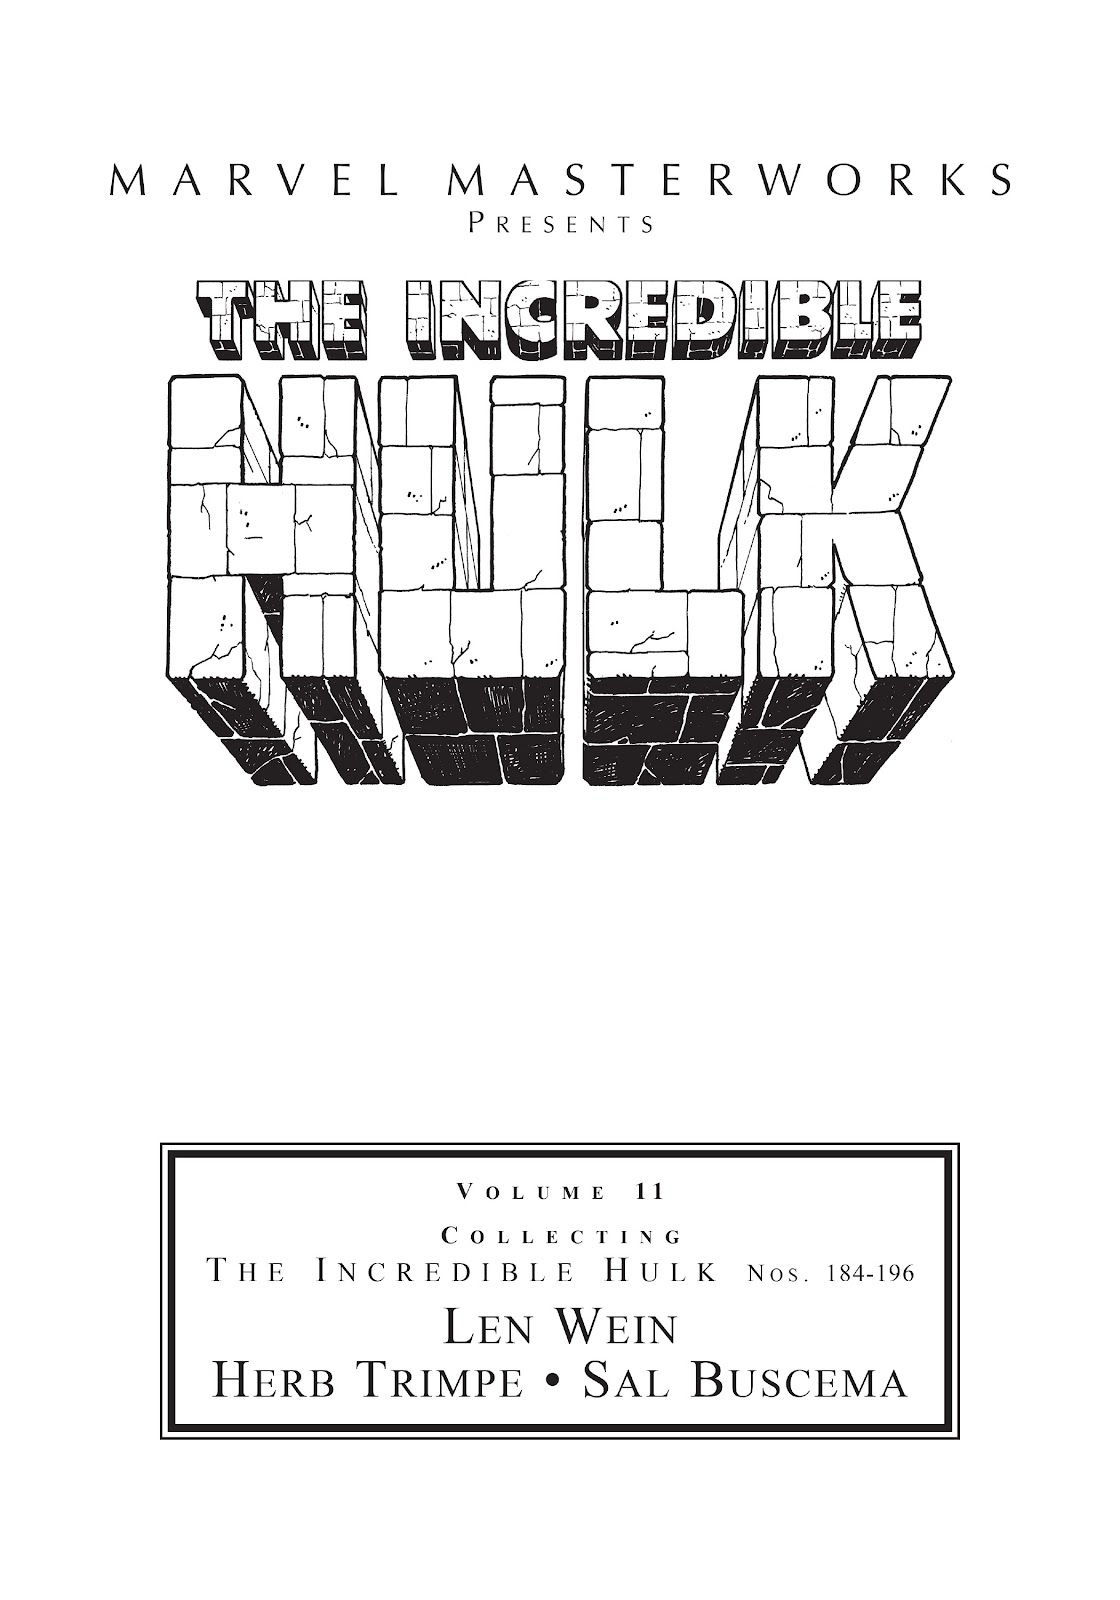 Read online Marvel Masterworks: The Incredible Hulk comic -  Issue # TPB 11 (Part 1) - 2